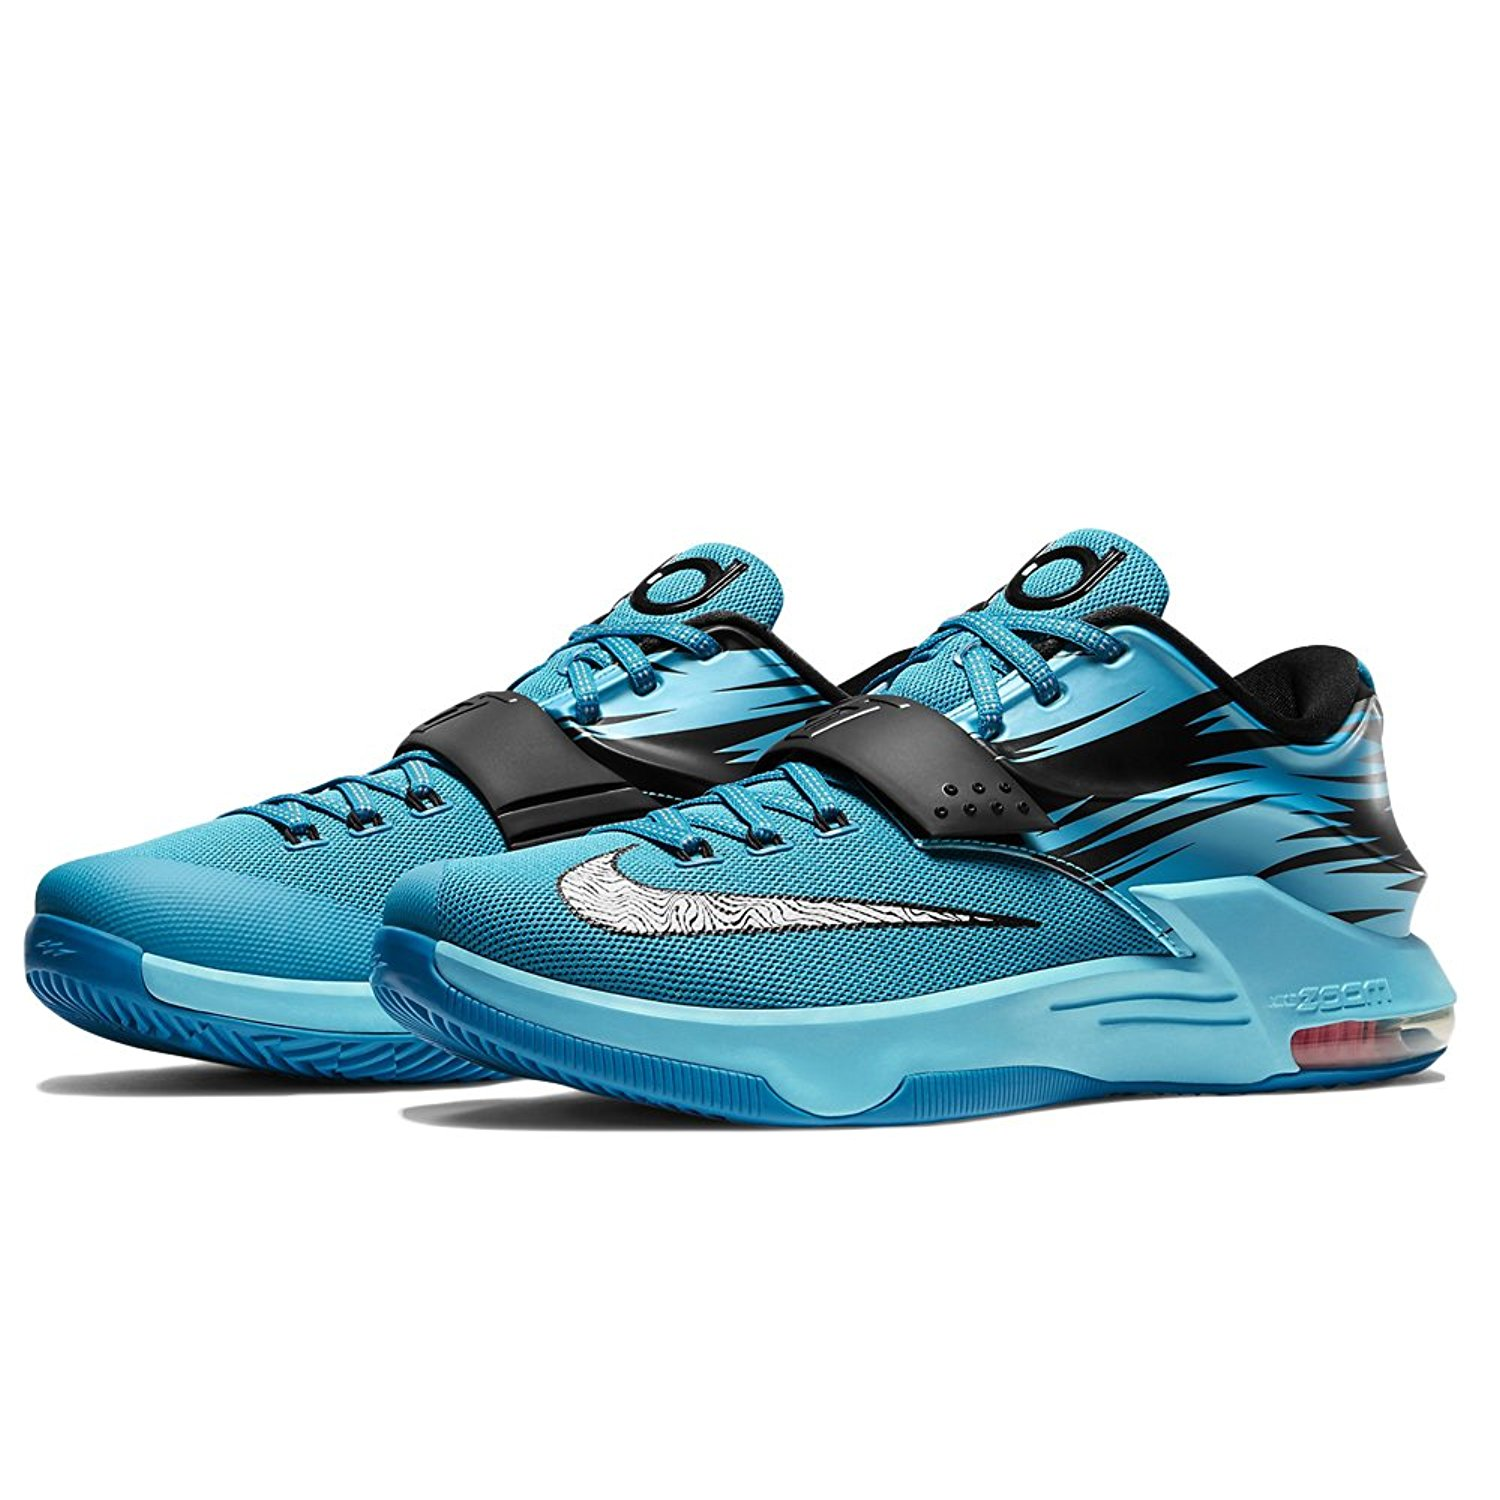 finest selection 14863 ad3a3 Get Quotations · Nike KD VII 7 Clearwater - Light Blue Lacquer - White -  Total Orange Mens 8.5